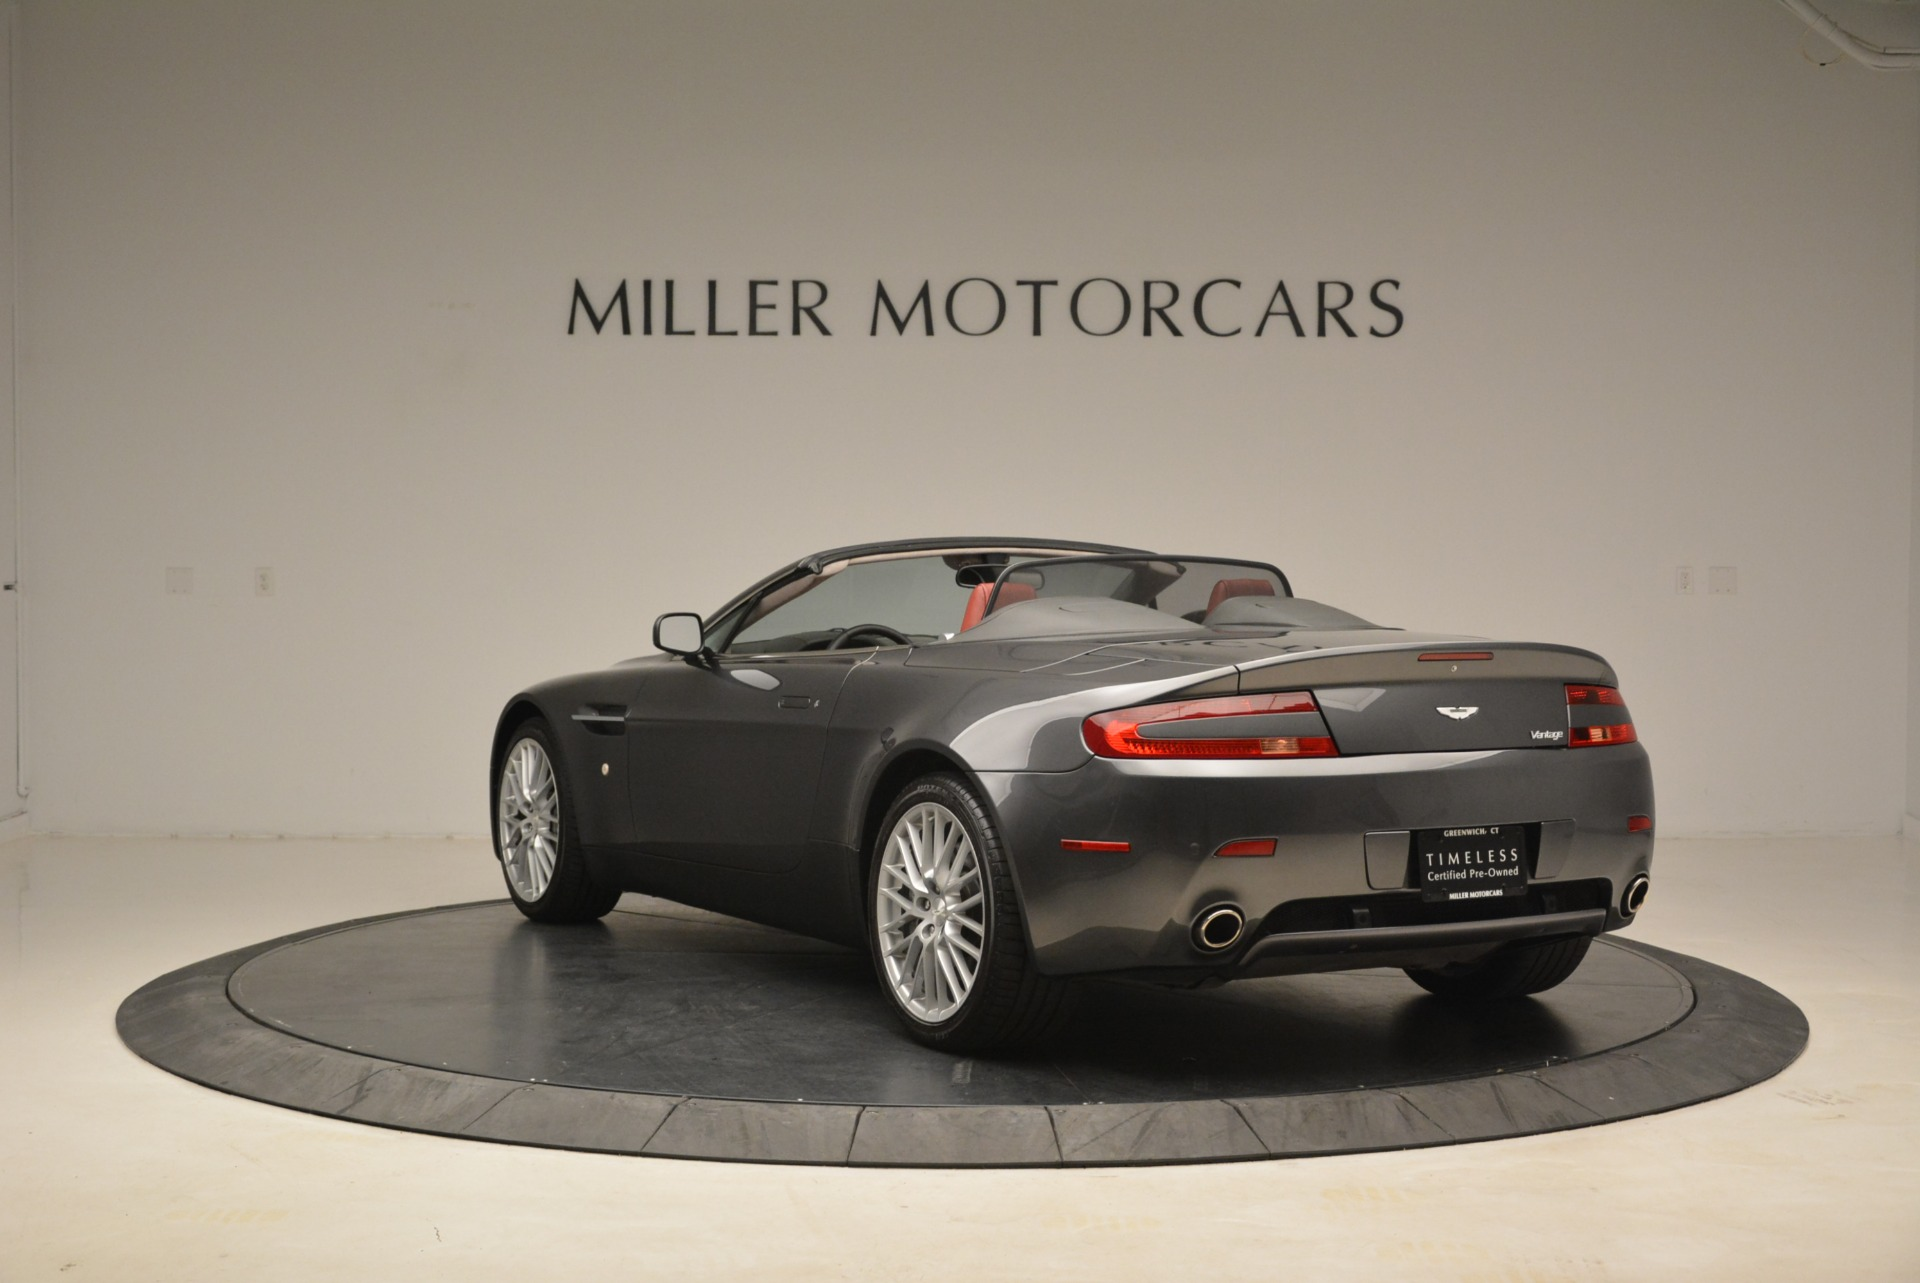 Used 2009 Aston Martin V8 Vantage Roadster For Sale In Greenwich, CT 2123_p5